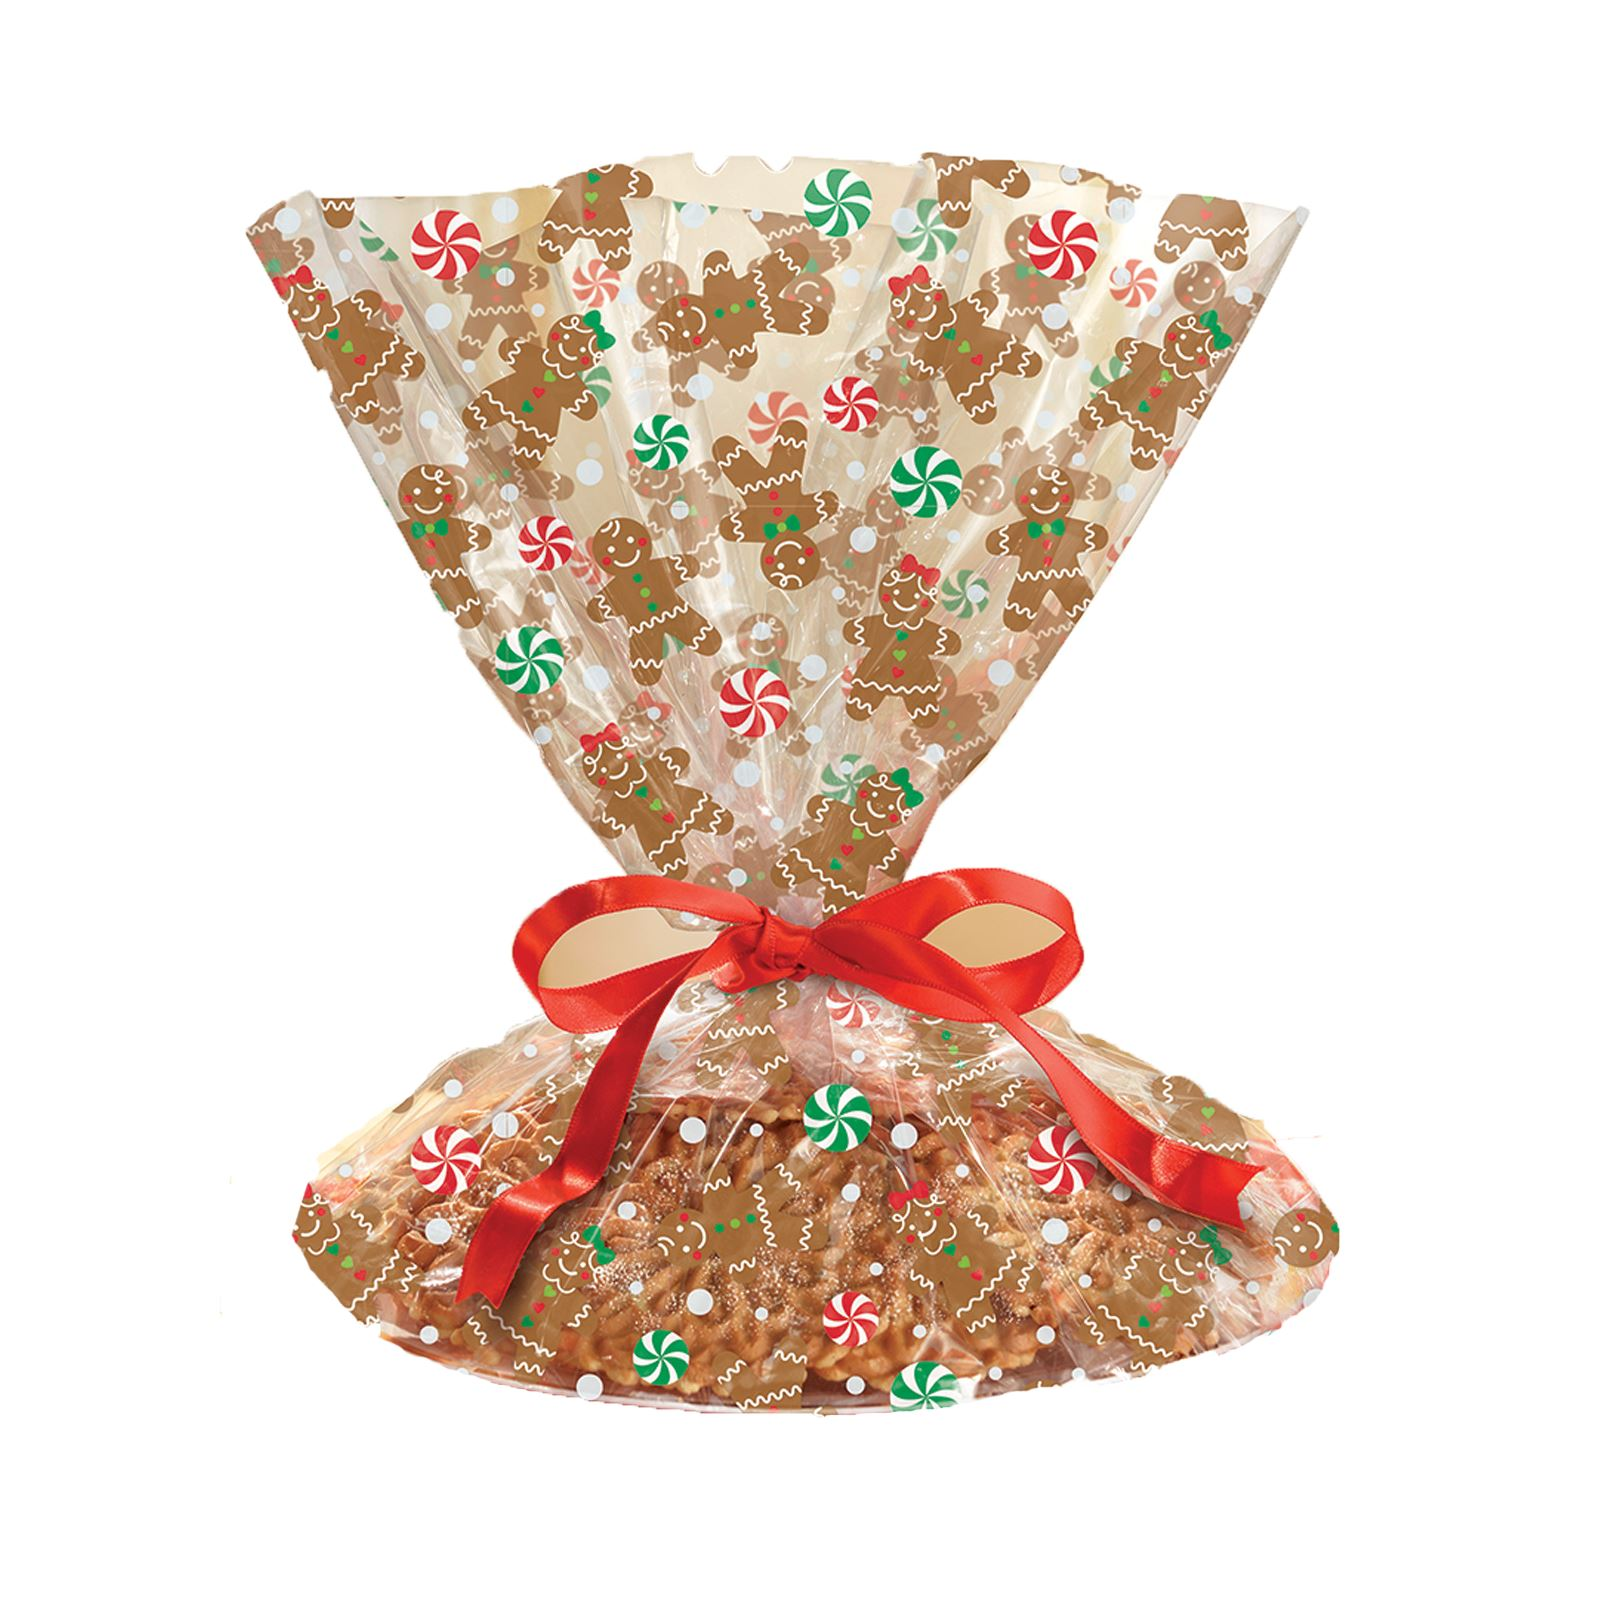 BISCUIT COOKIE GIFT LOOT TREAT 5 Red//5 Green 10 CHRISTMAS PAPER PARTY BAGS